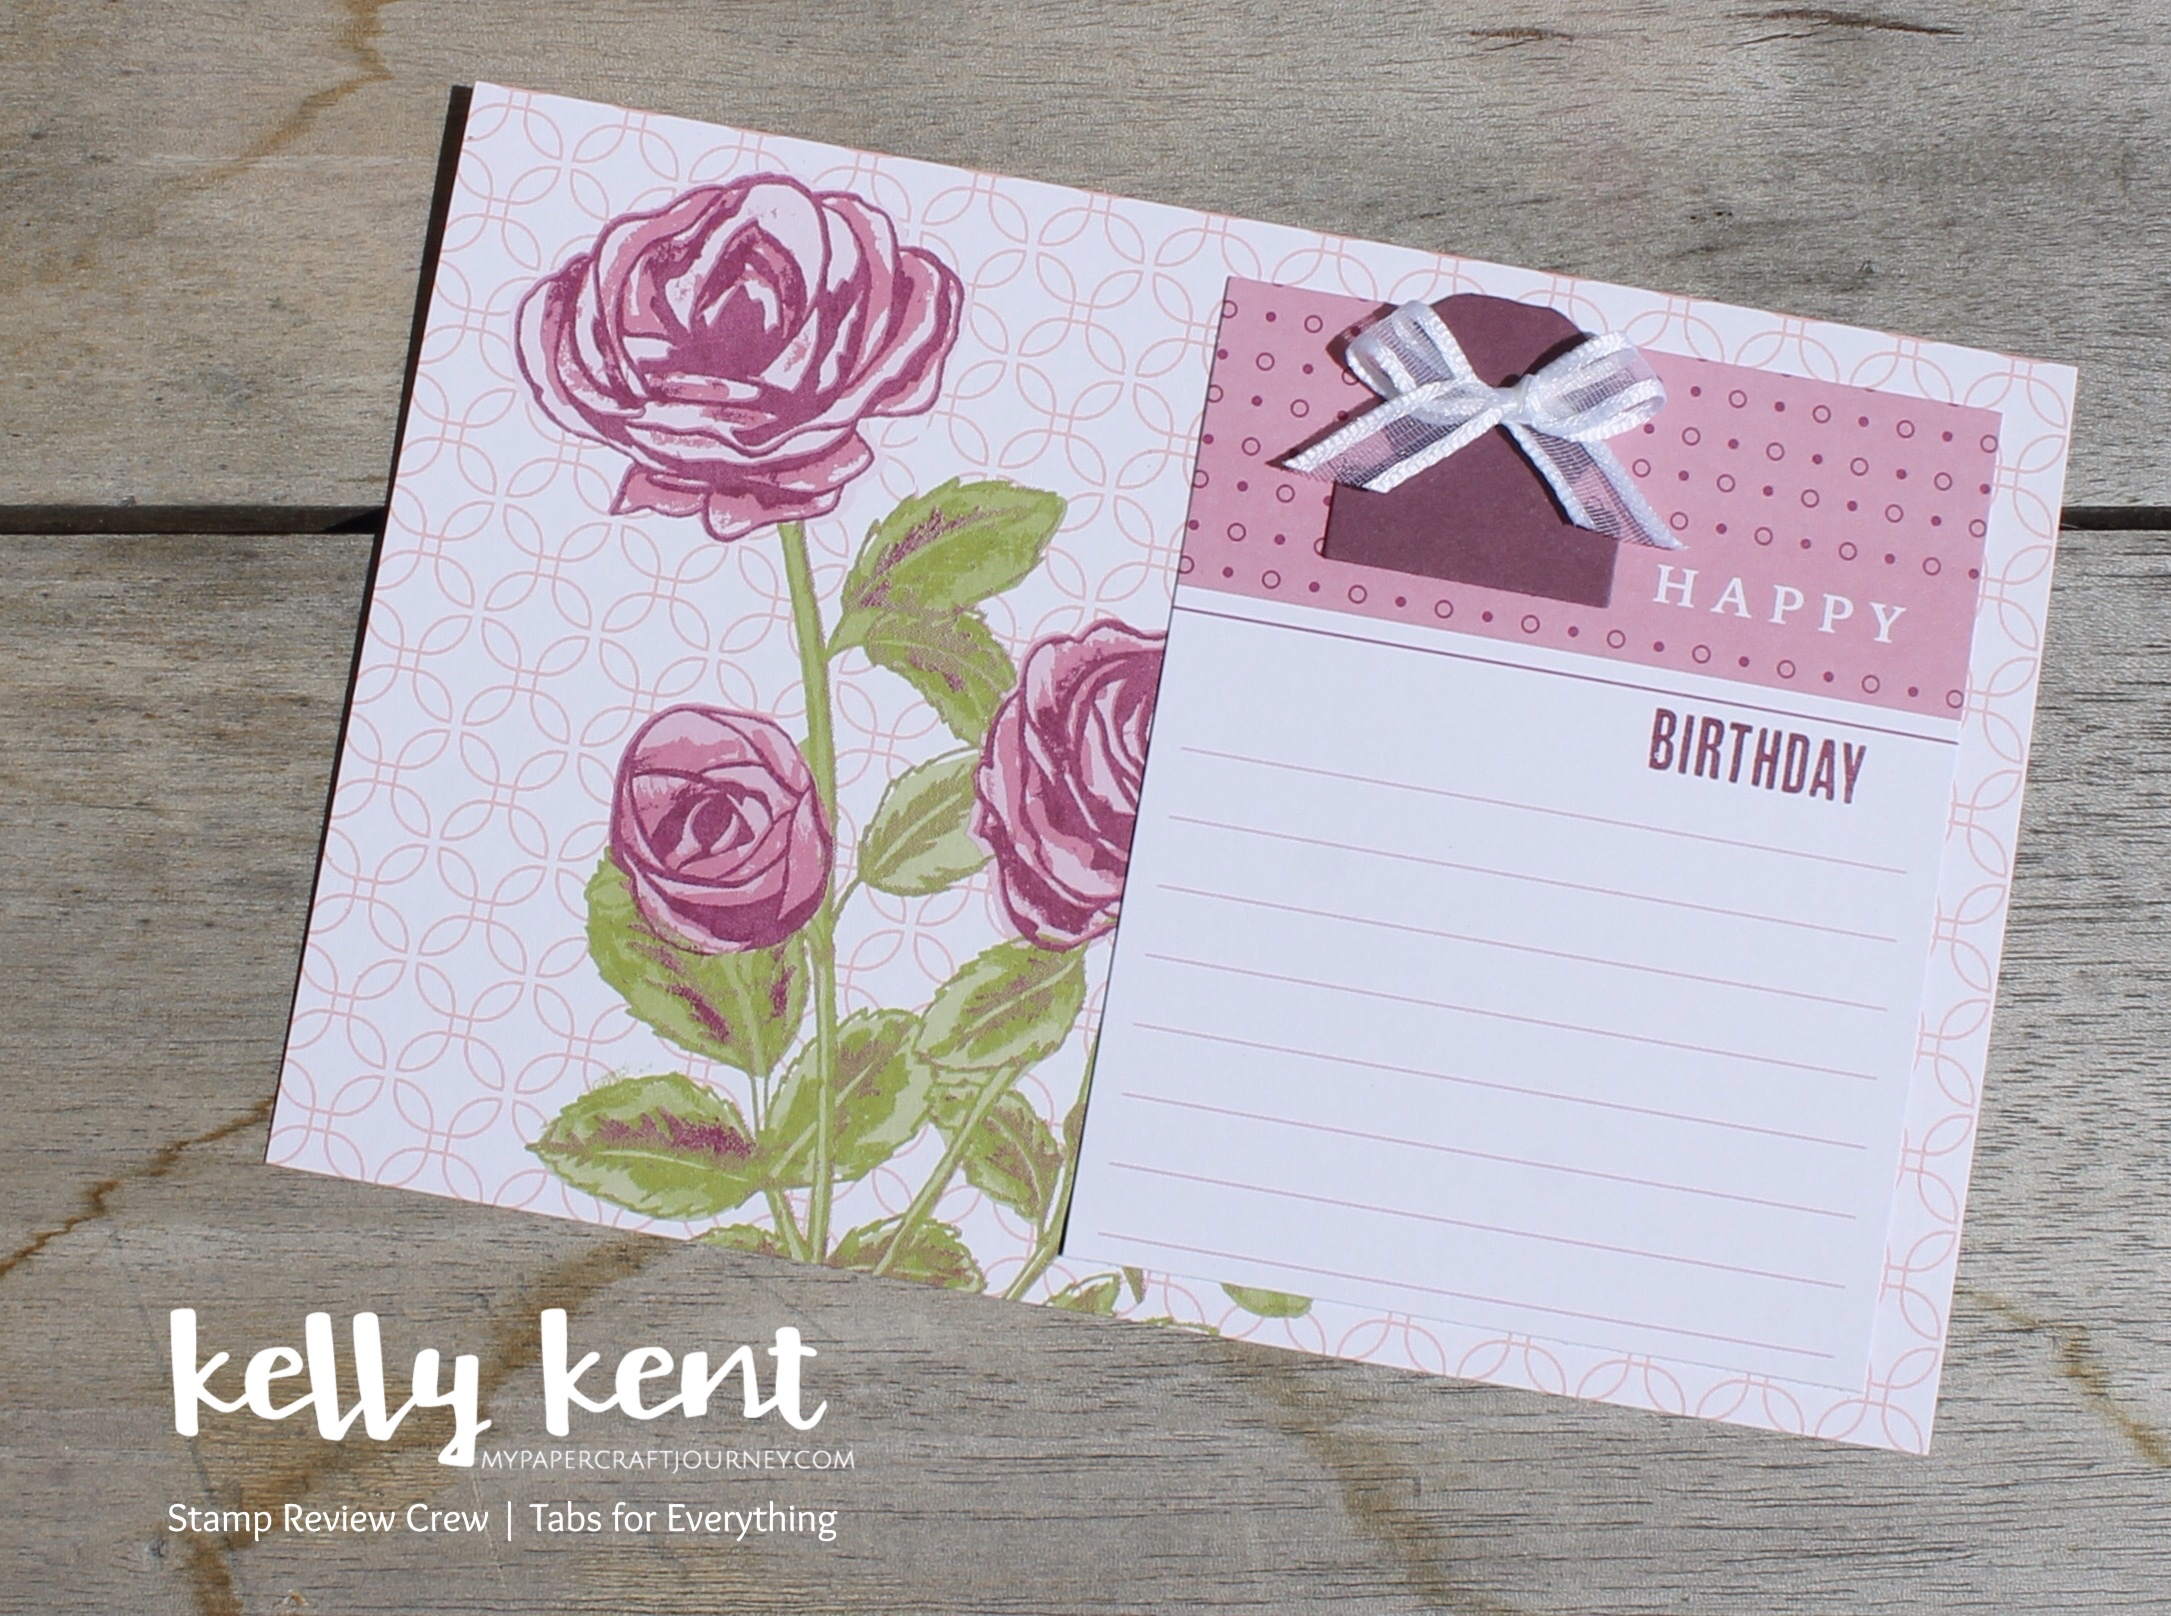 Stamp Review Crew - Tabs for Everything | kelly kent